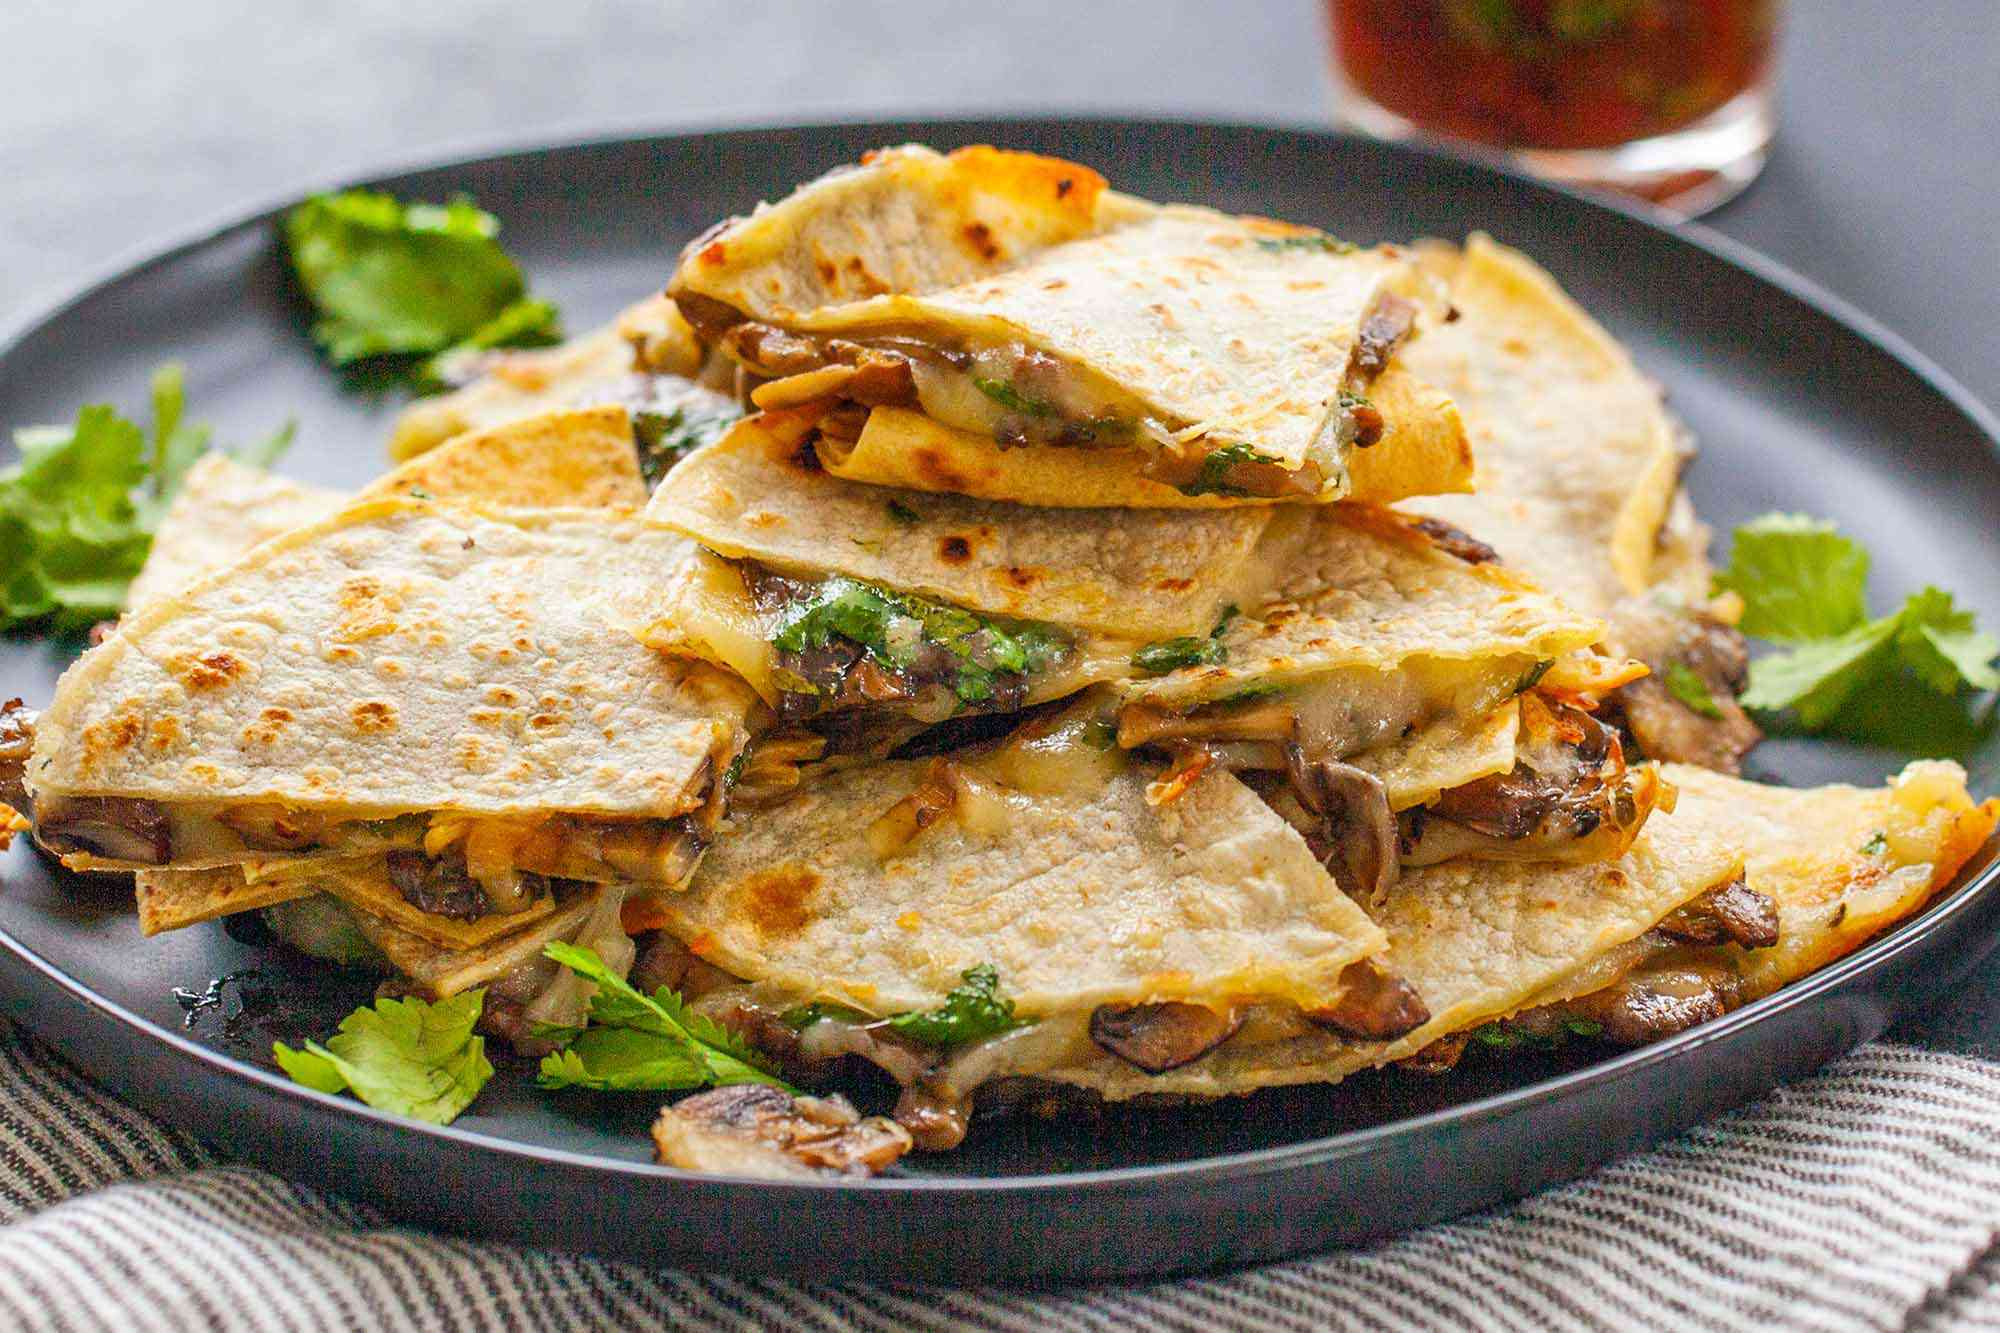 Vegetarian Quesadilla Recipe -close up of cheese and mushroom quesadillas stacked on top of each other with a jar of red salsa in the background.